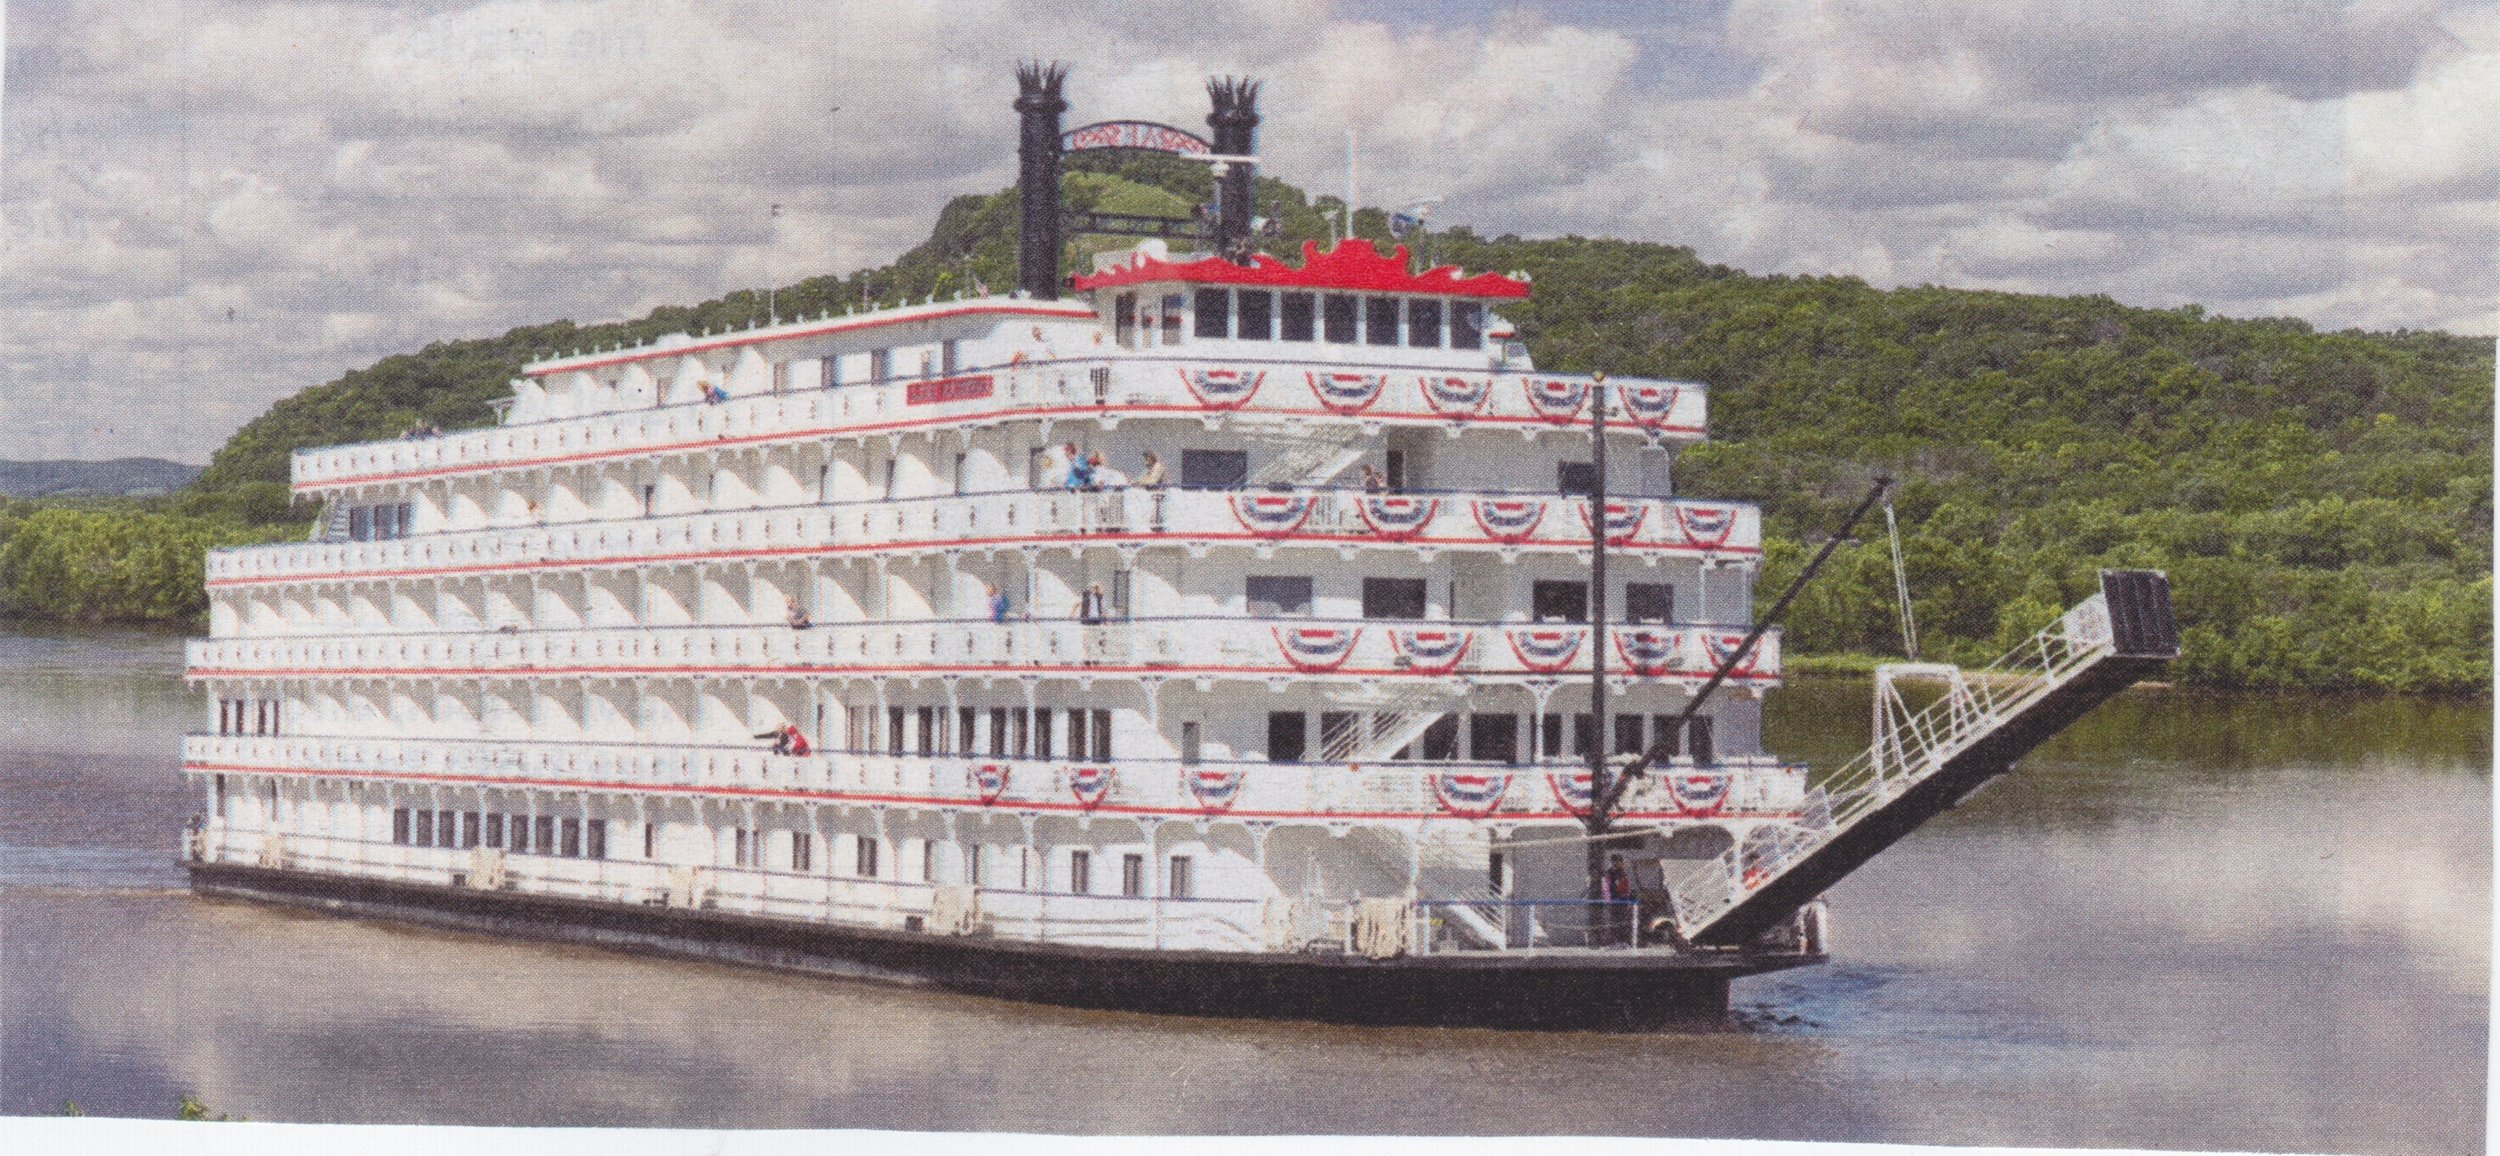 A riverboat on the Mississippi River